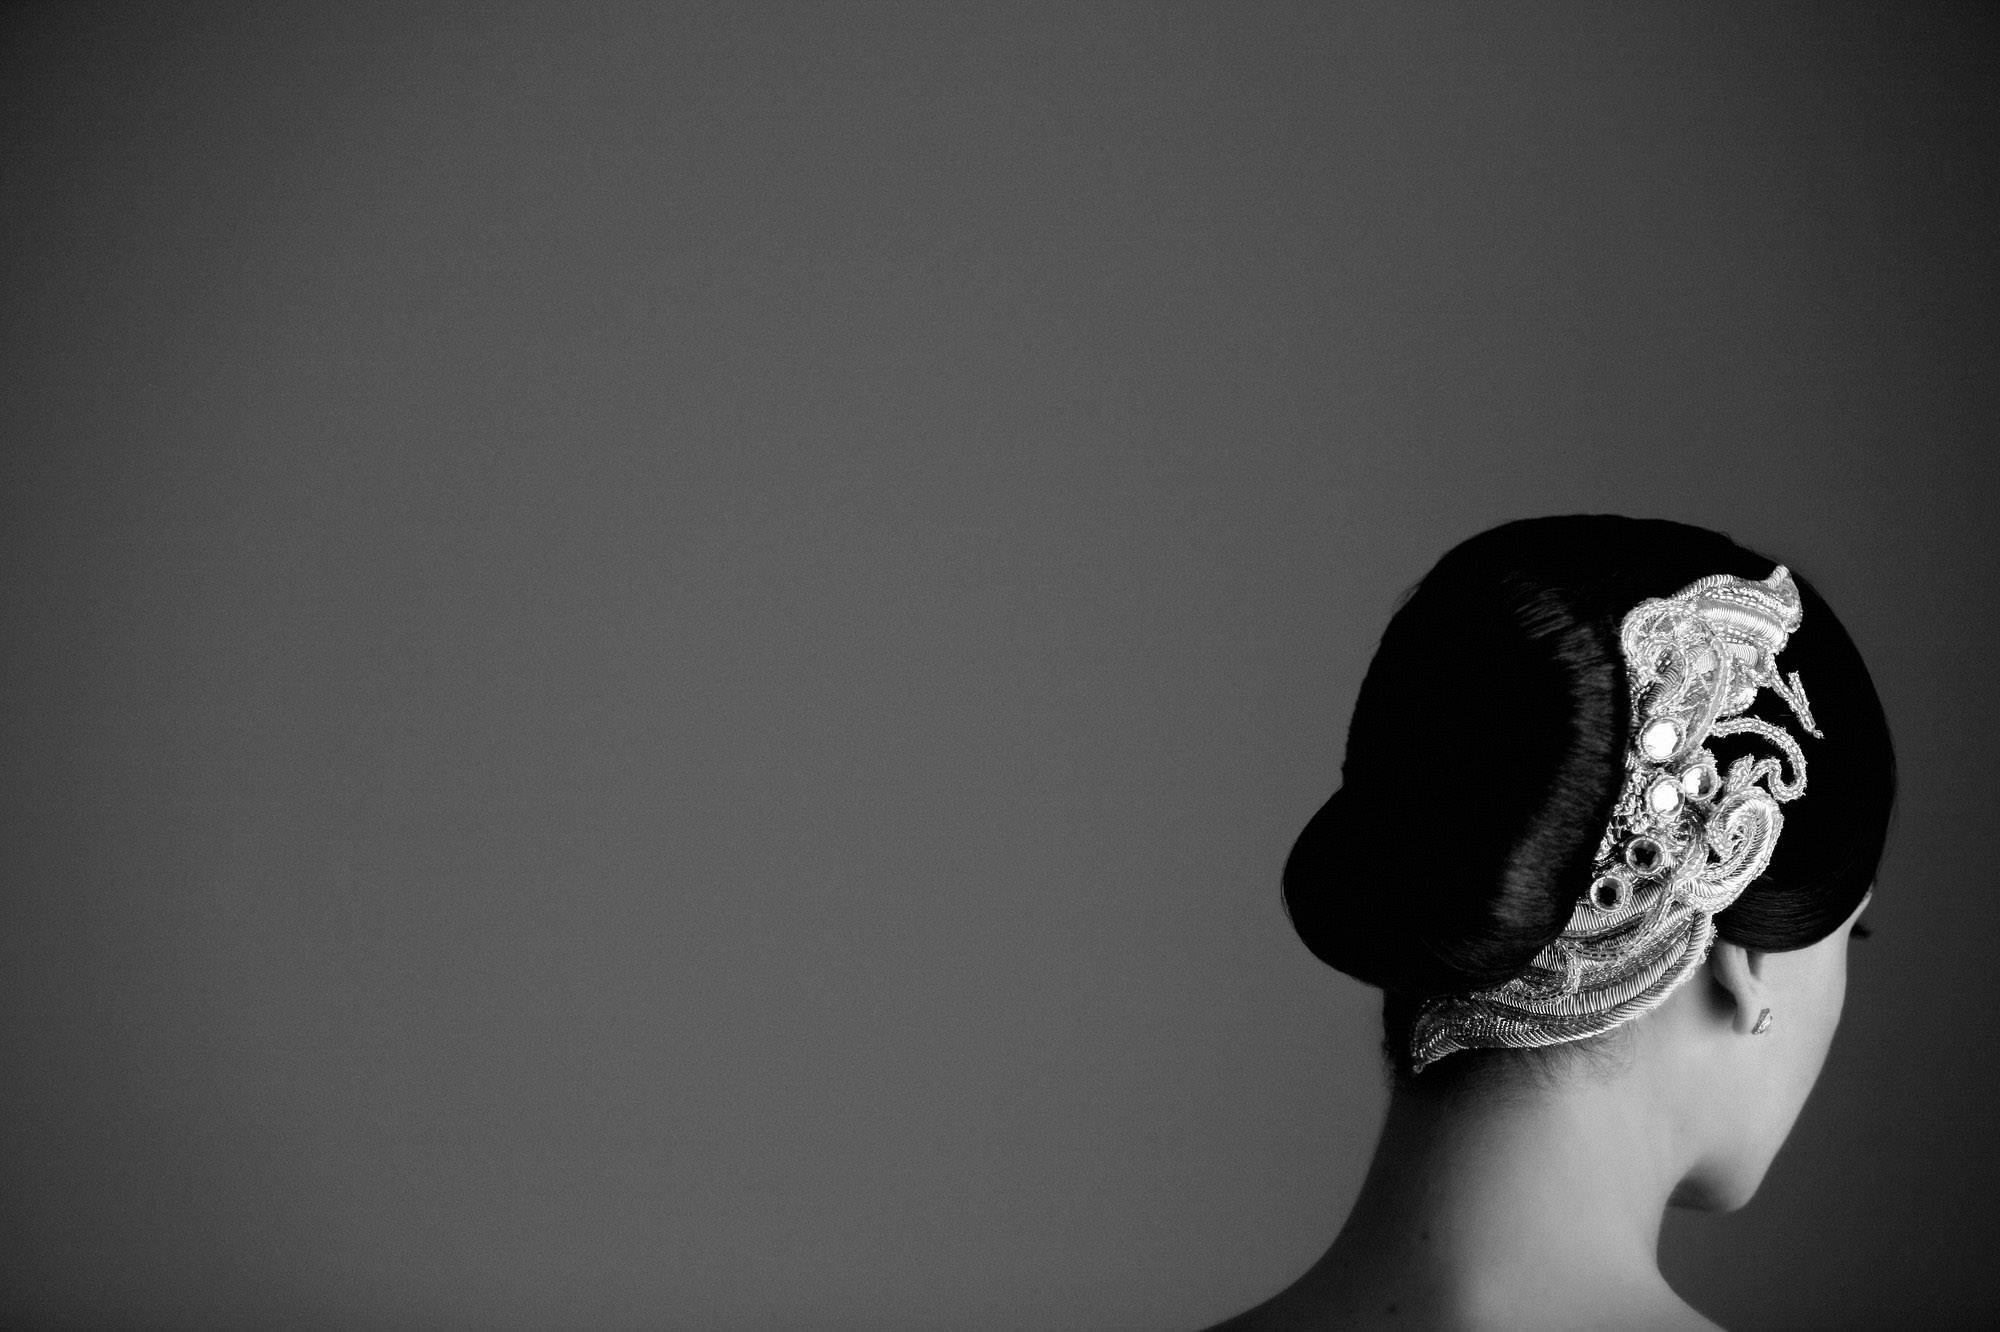 beaded-hair-accessory-with-jewls-in-chignon-best-wedding-photos-jerry-ghionis-top-las-vegas-photographer